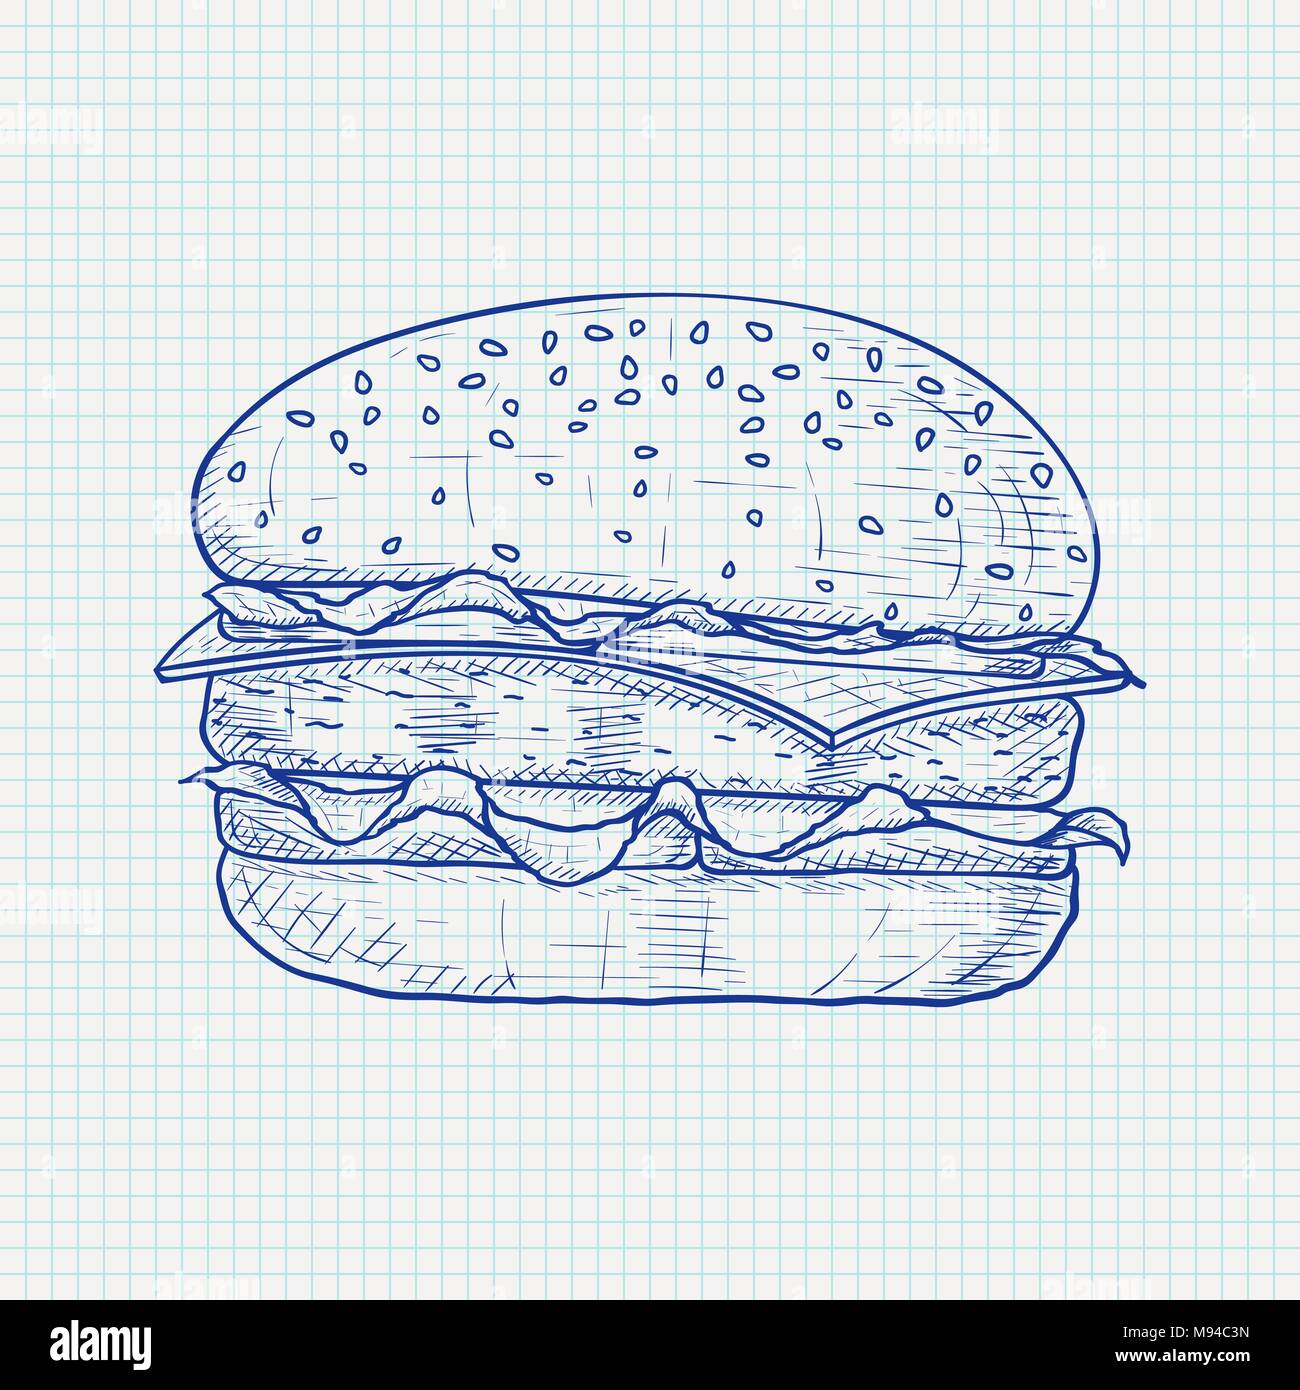 Hamburger. Hand drawn sketch on lined paper background Stock Vector